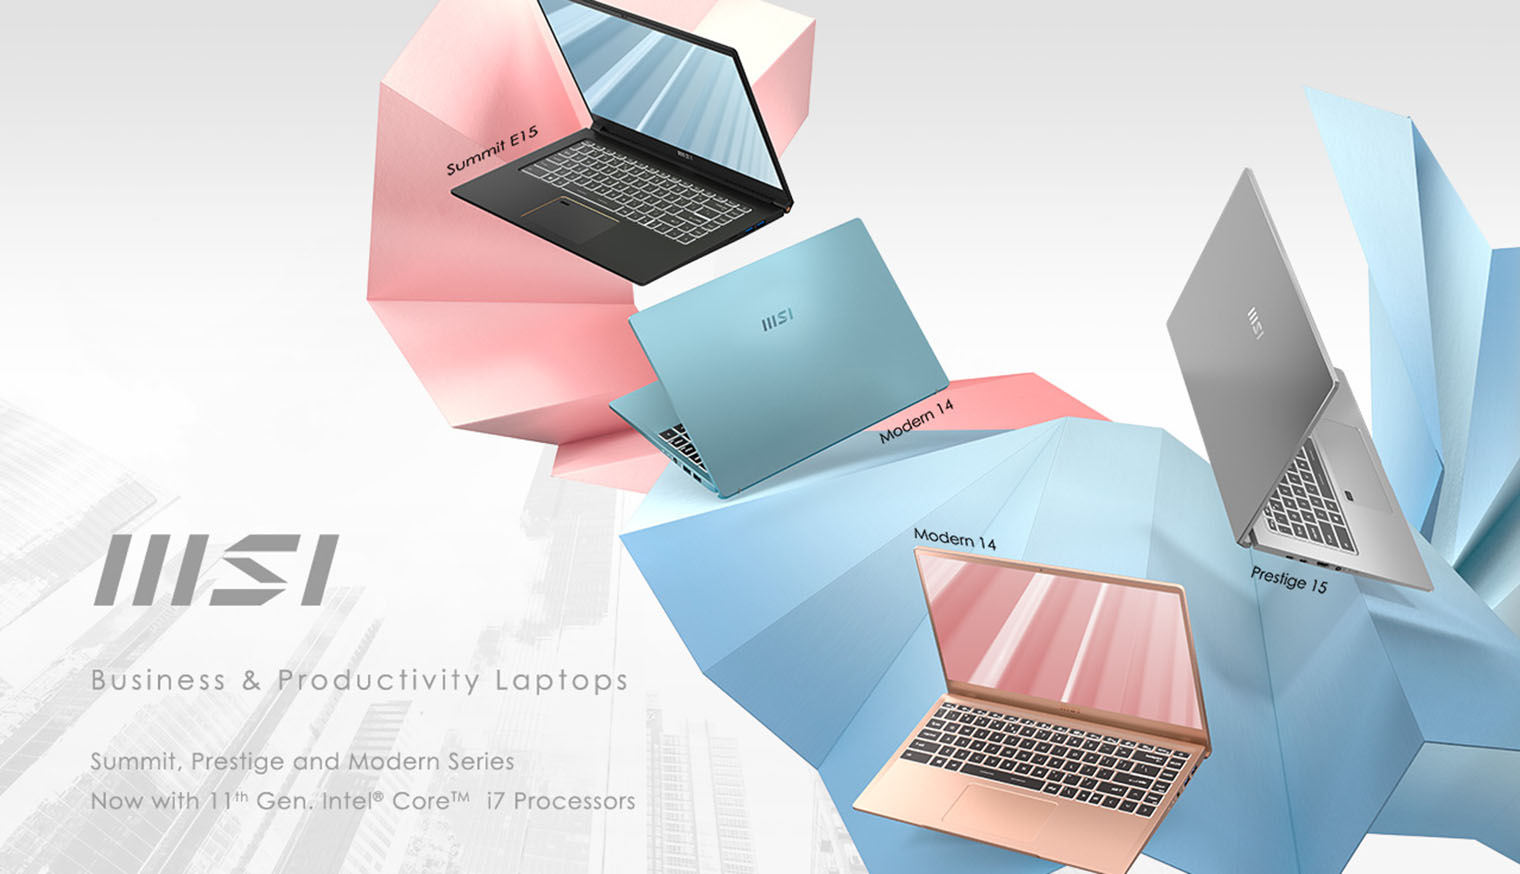 new msi business and productivity laptop series